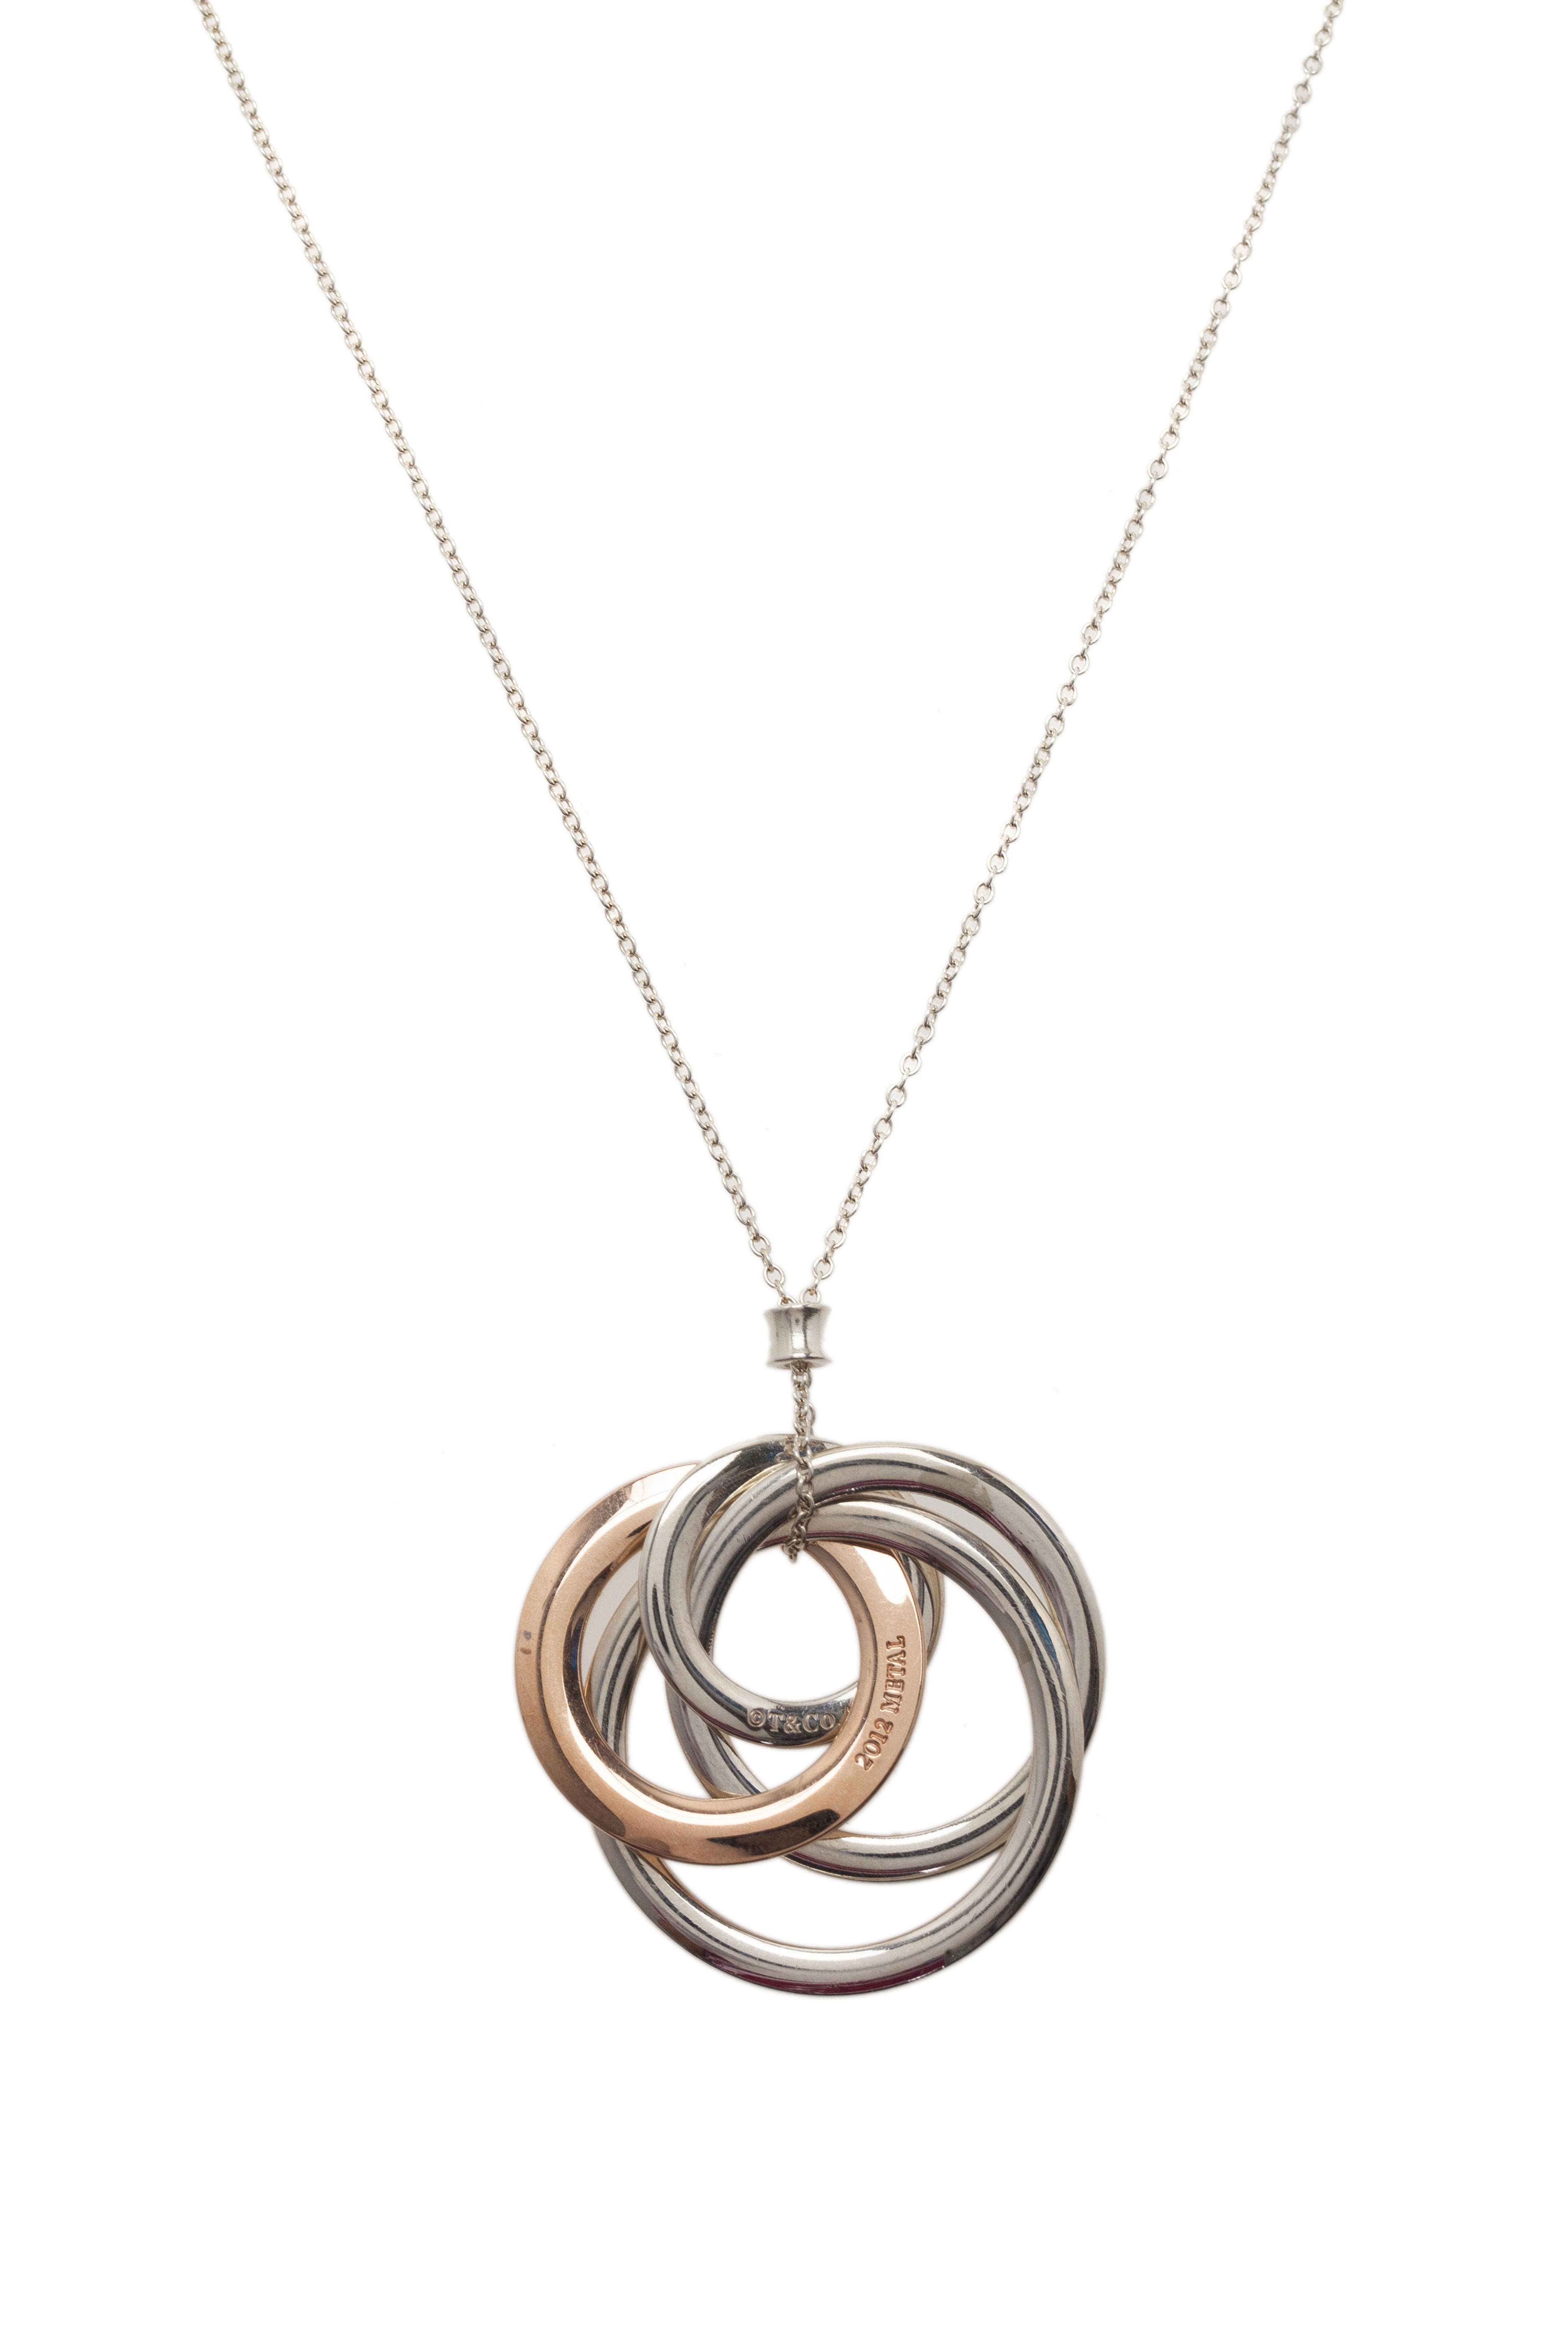 Tiffany & Co. 1837 Interlocking Circles Sterling Silver and Rubedo Pendant Necklace